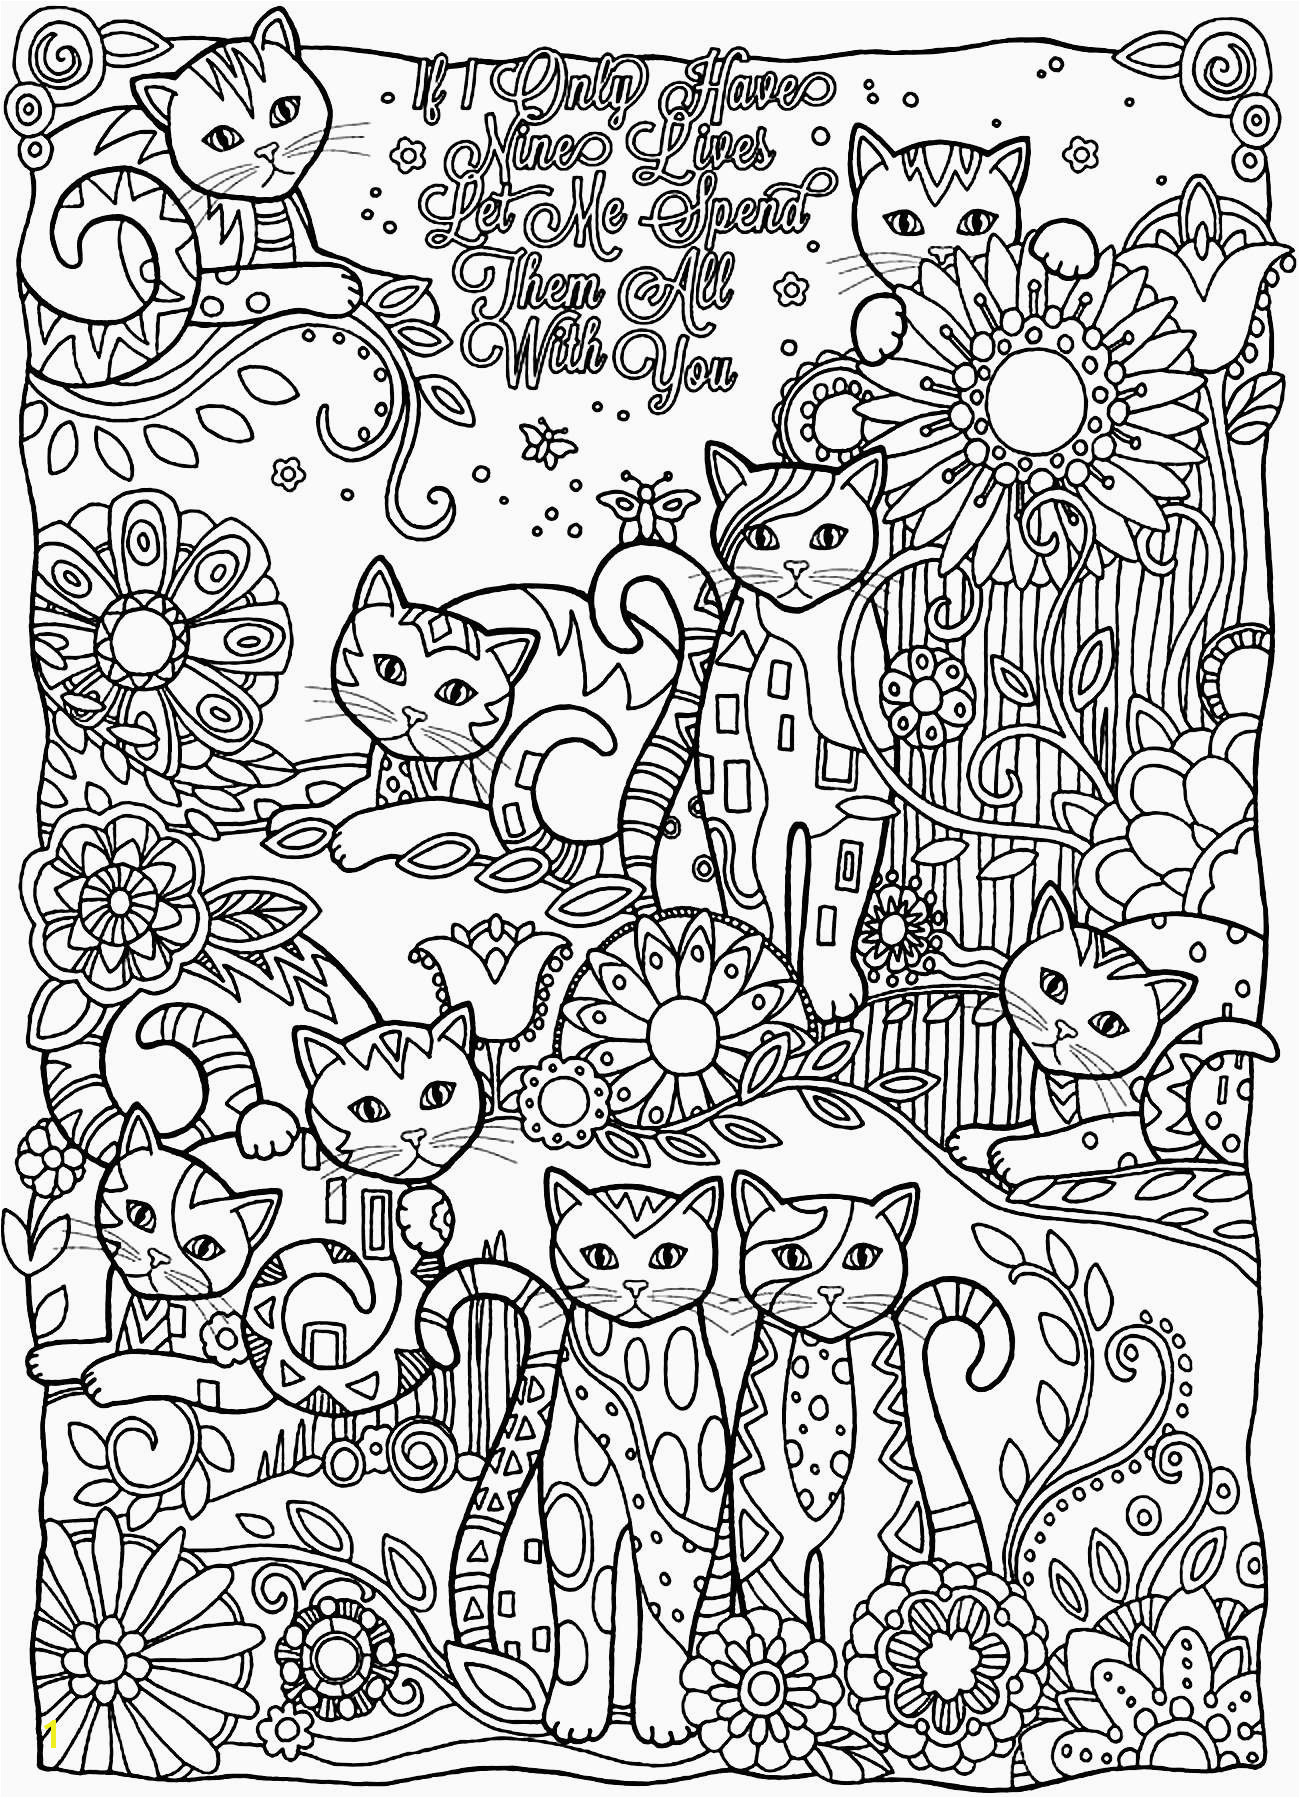 Christmas Coloring Pages for Adults Free Printable Christmas Coloring Pages Printable Luxury Cool Od Dog Coloring